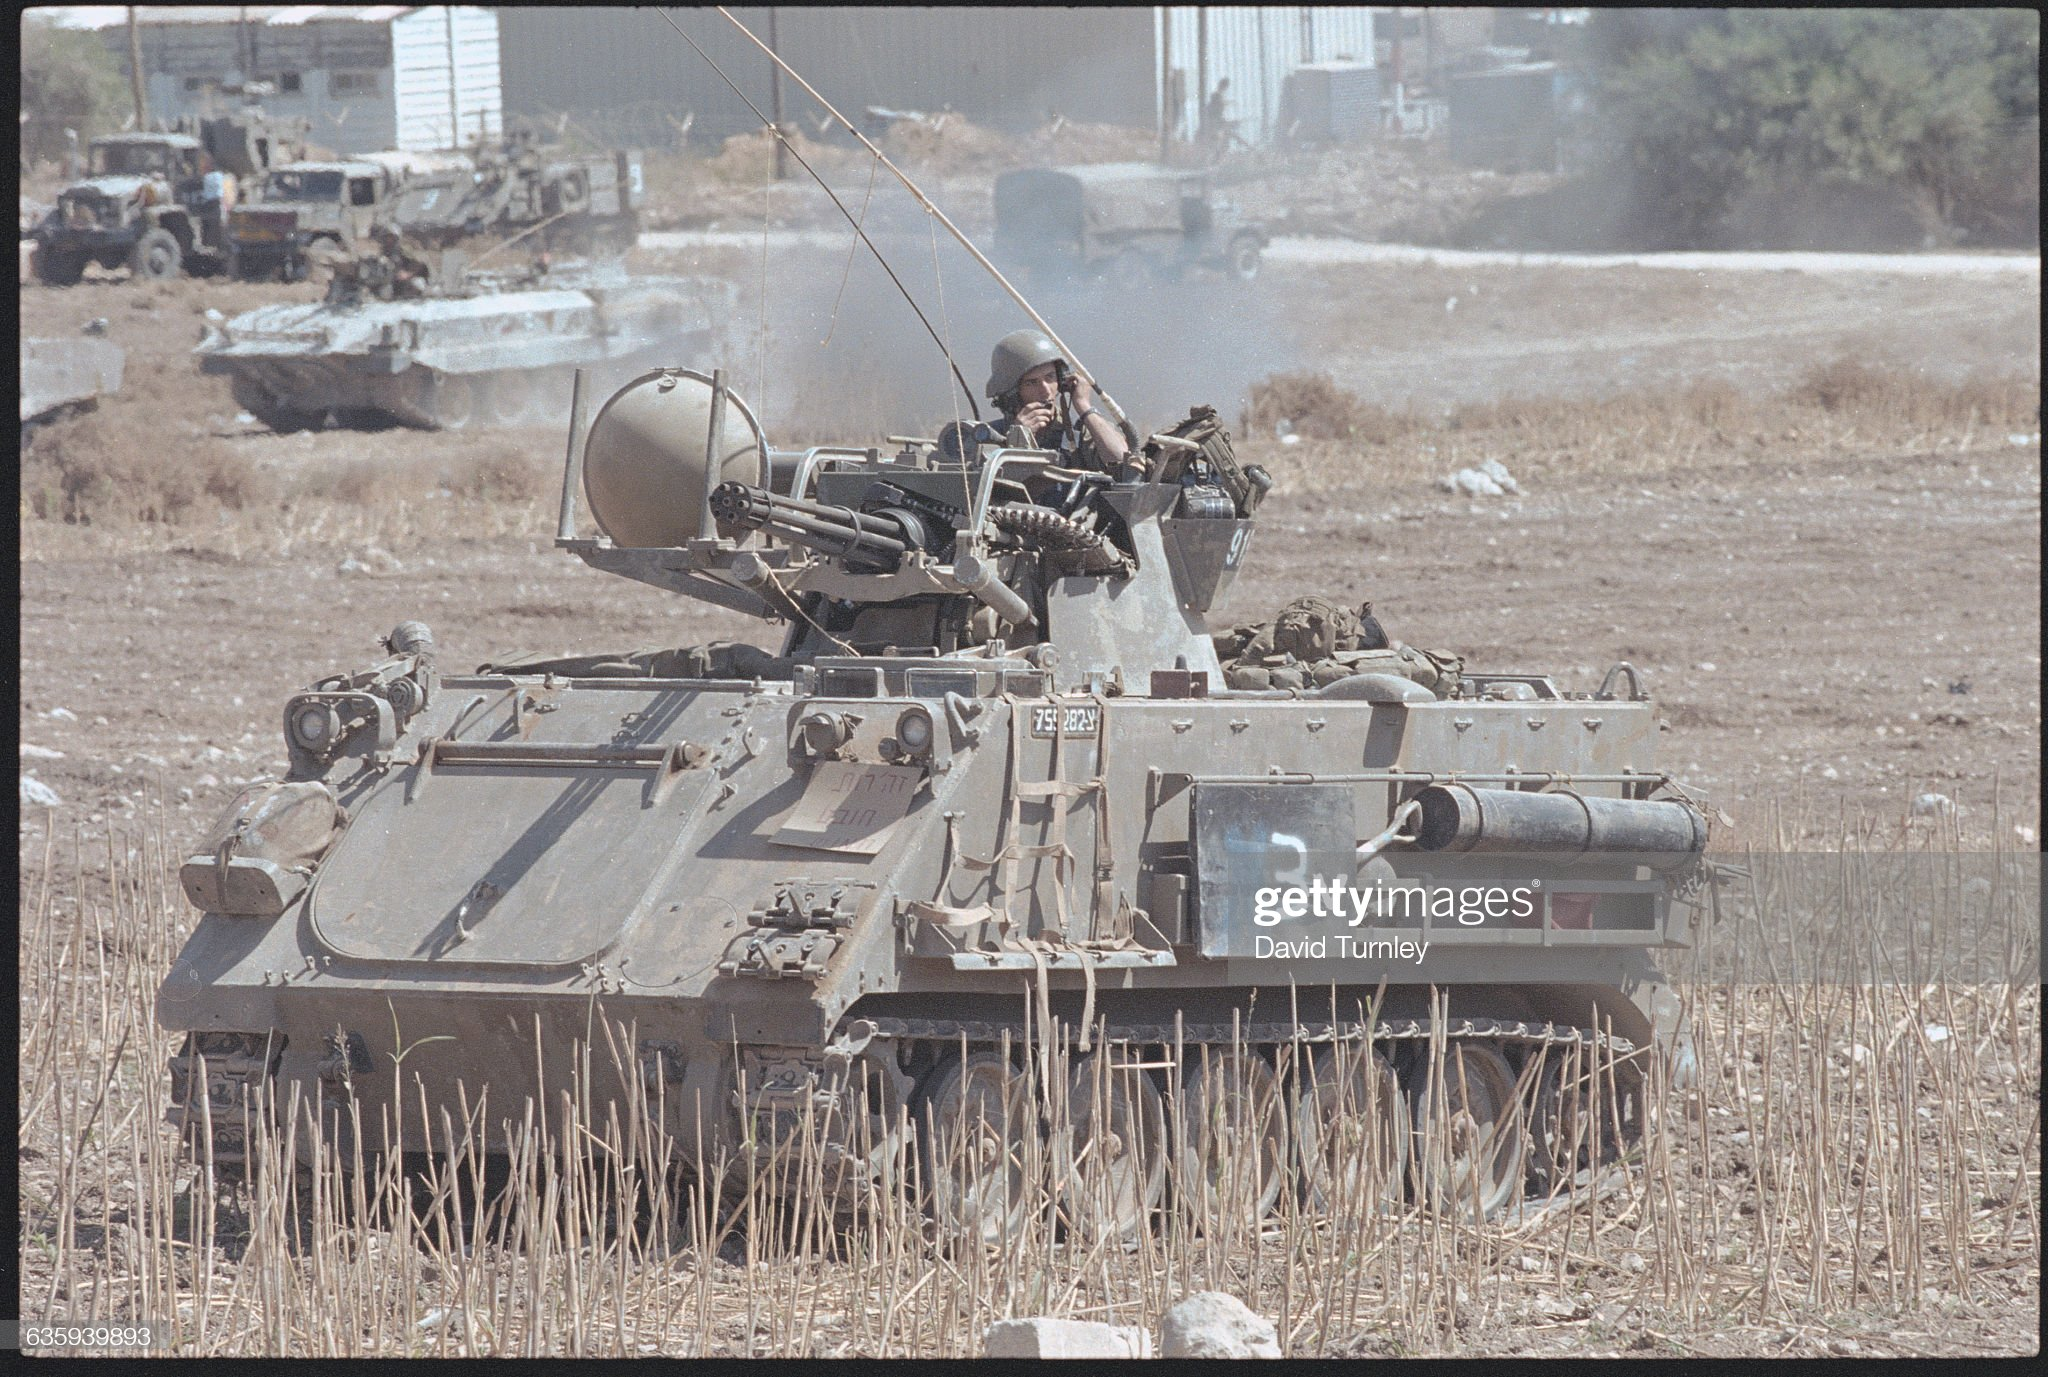 https://media.gettyimages.com/photos/tank-picture-id635939893?s=2048x2048